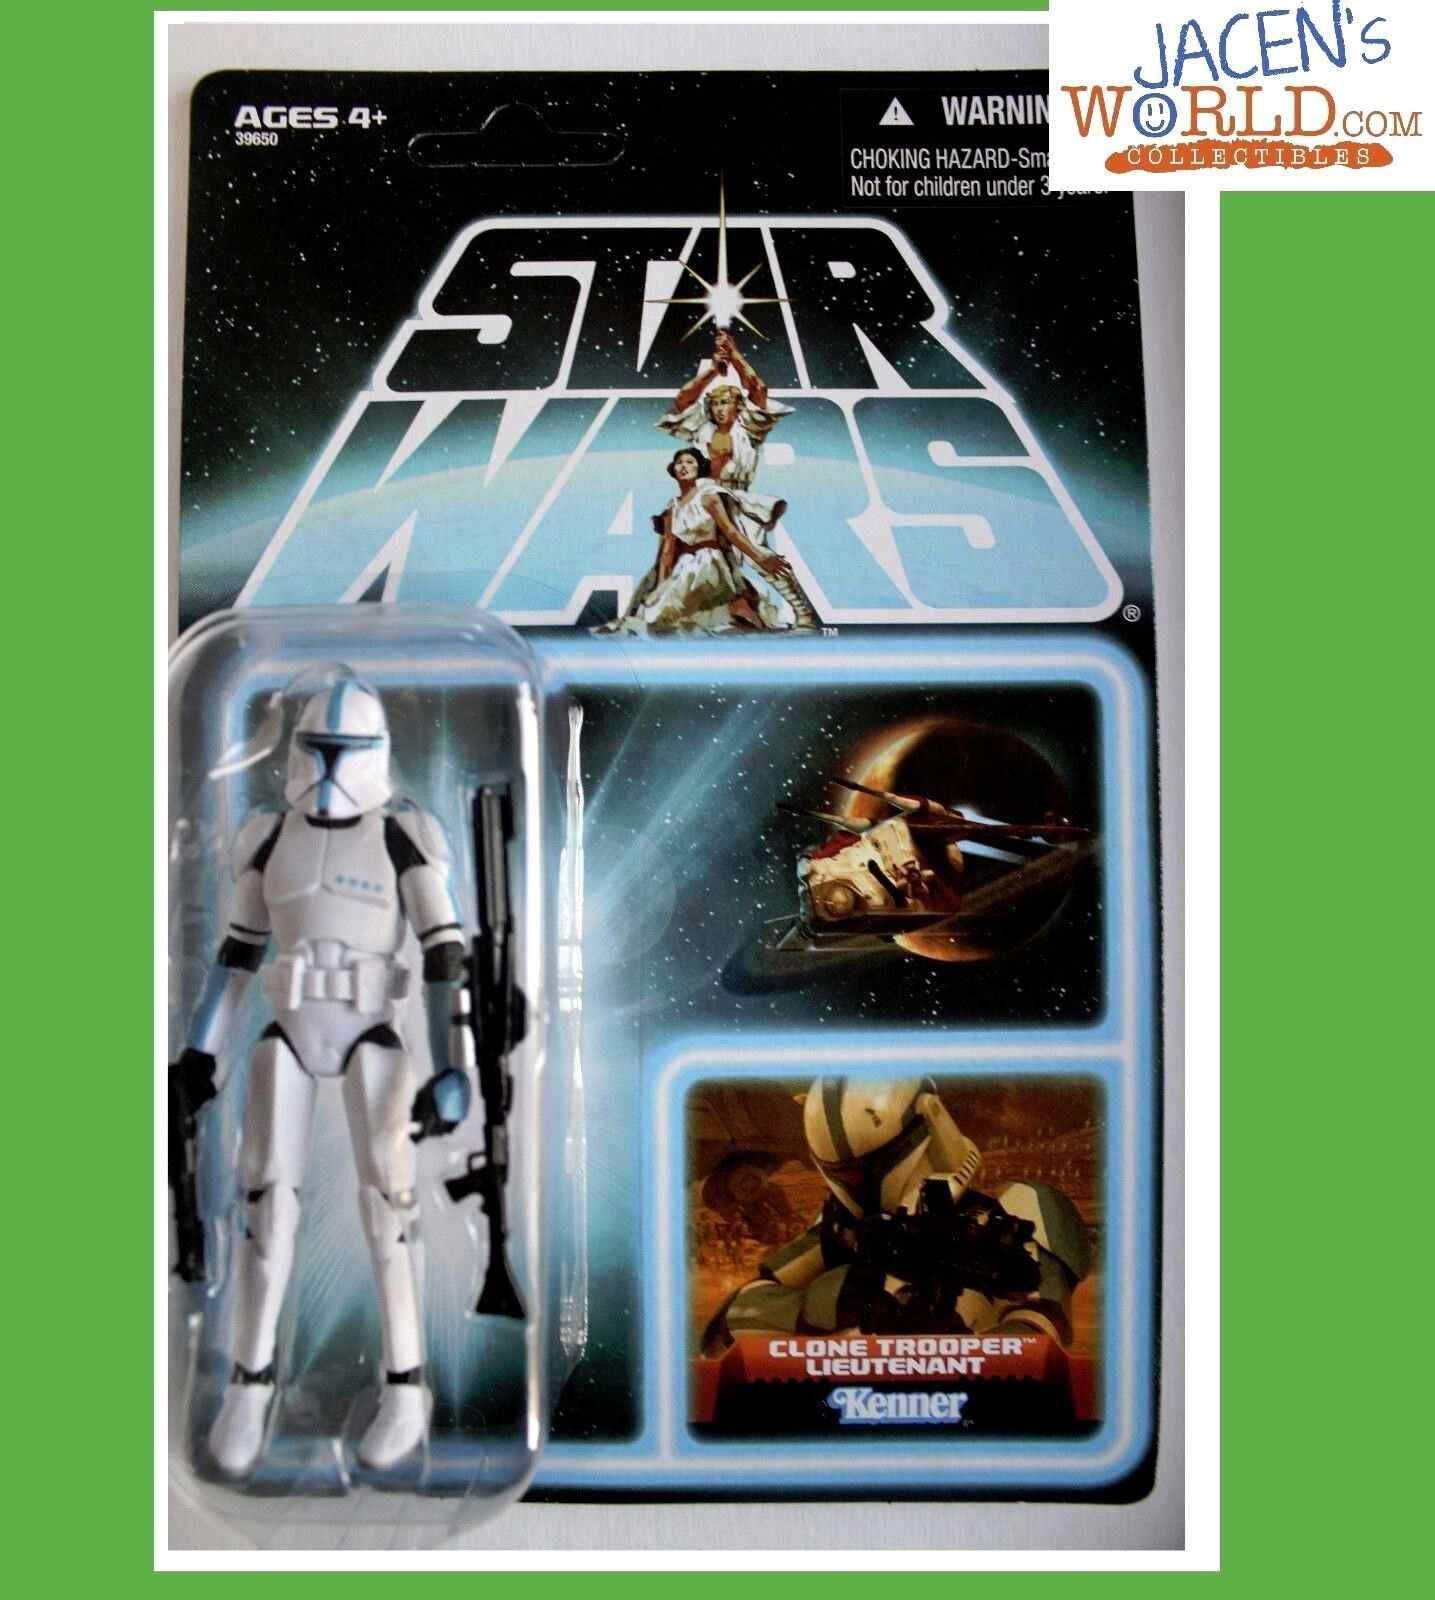 CLONE TROOPER LIEUTENANT VARIANT EP202 VC109 FIGURE STAR WARS VINTAGE COLLECTION